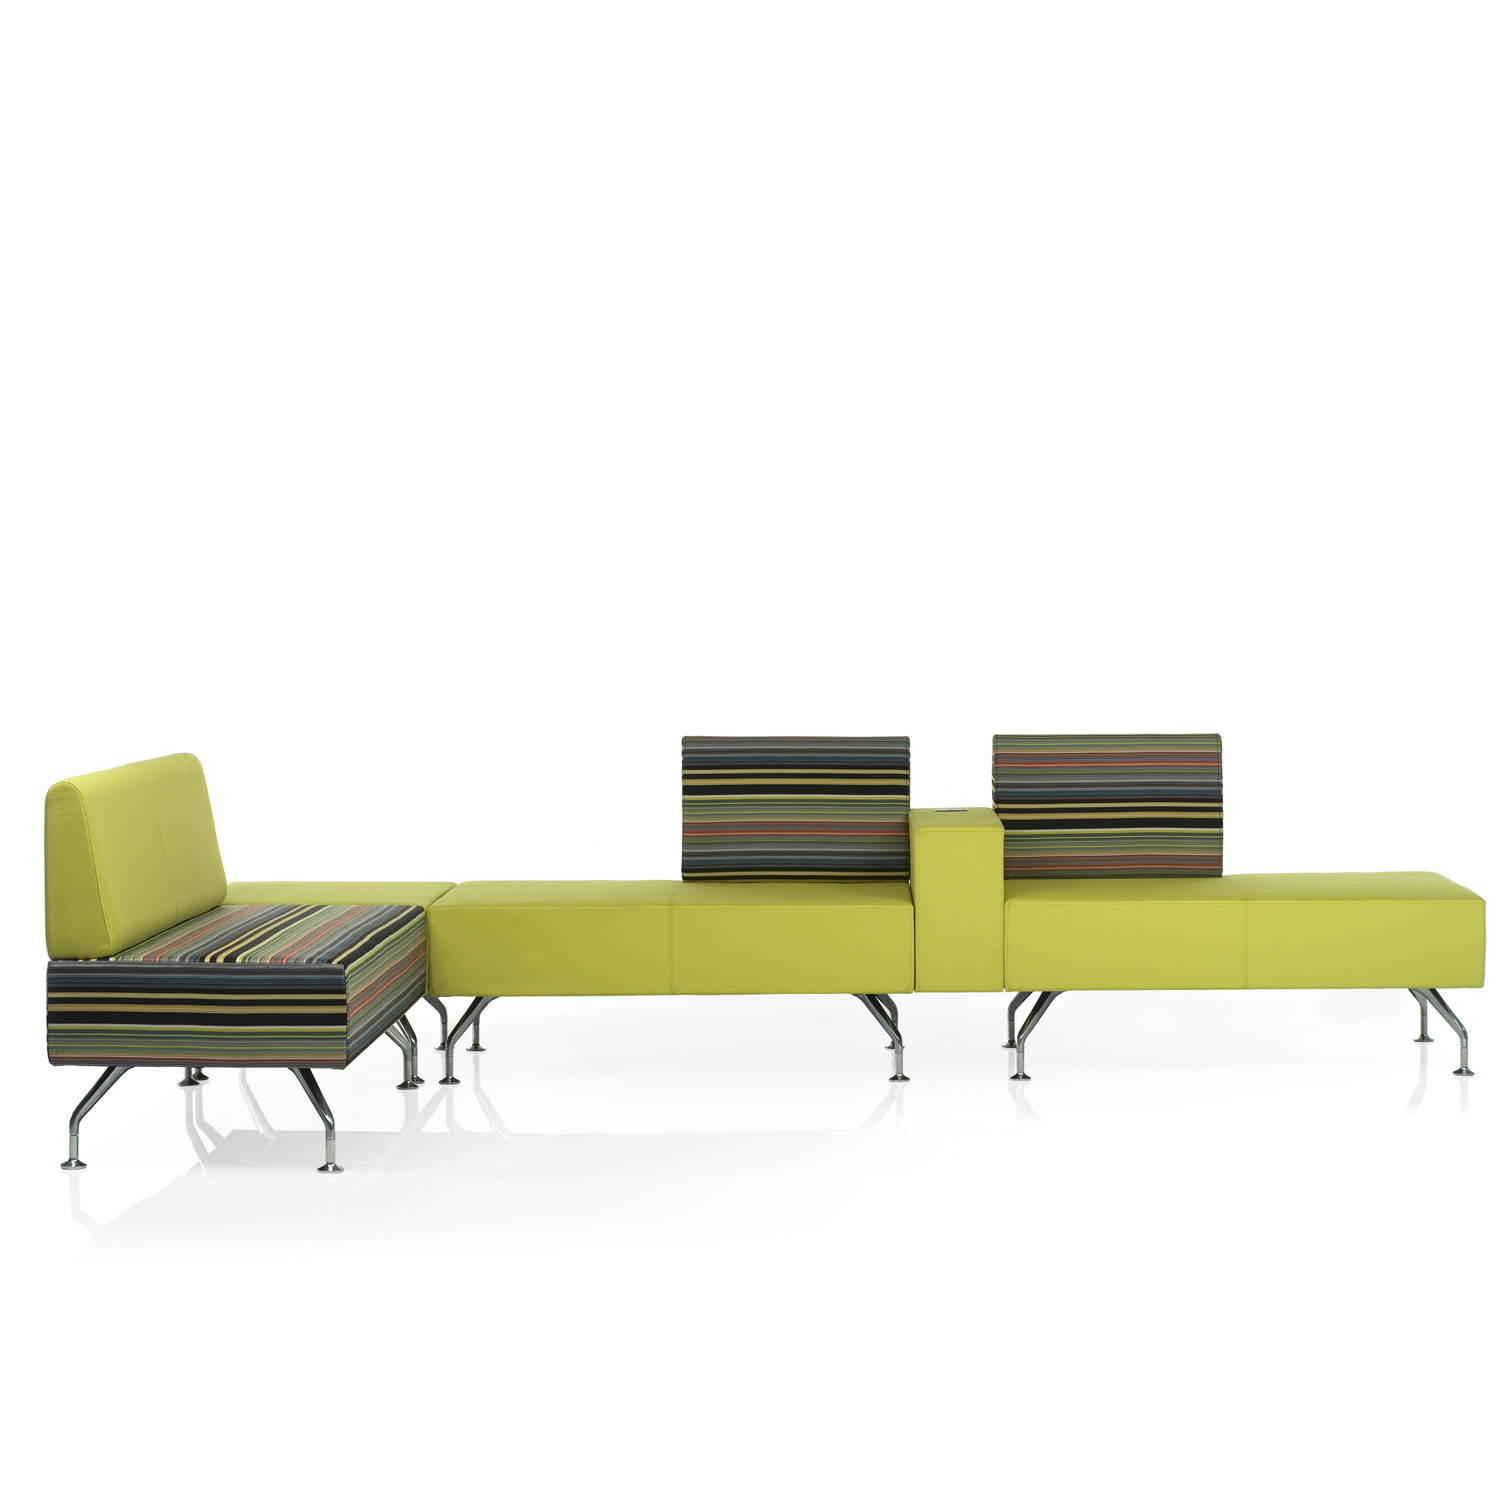 Perimeter Seating from Orangebox